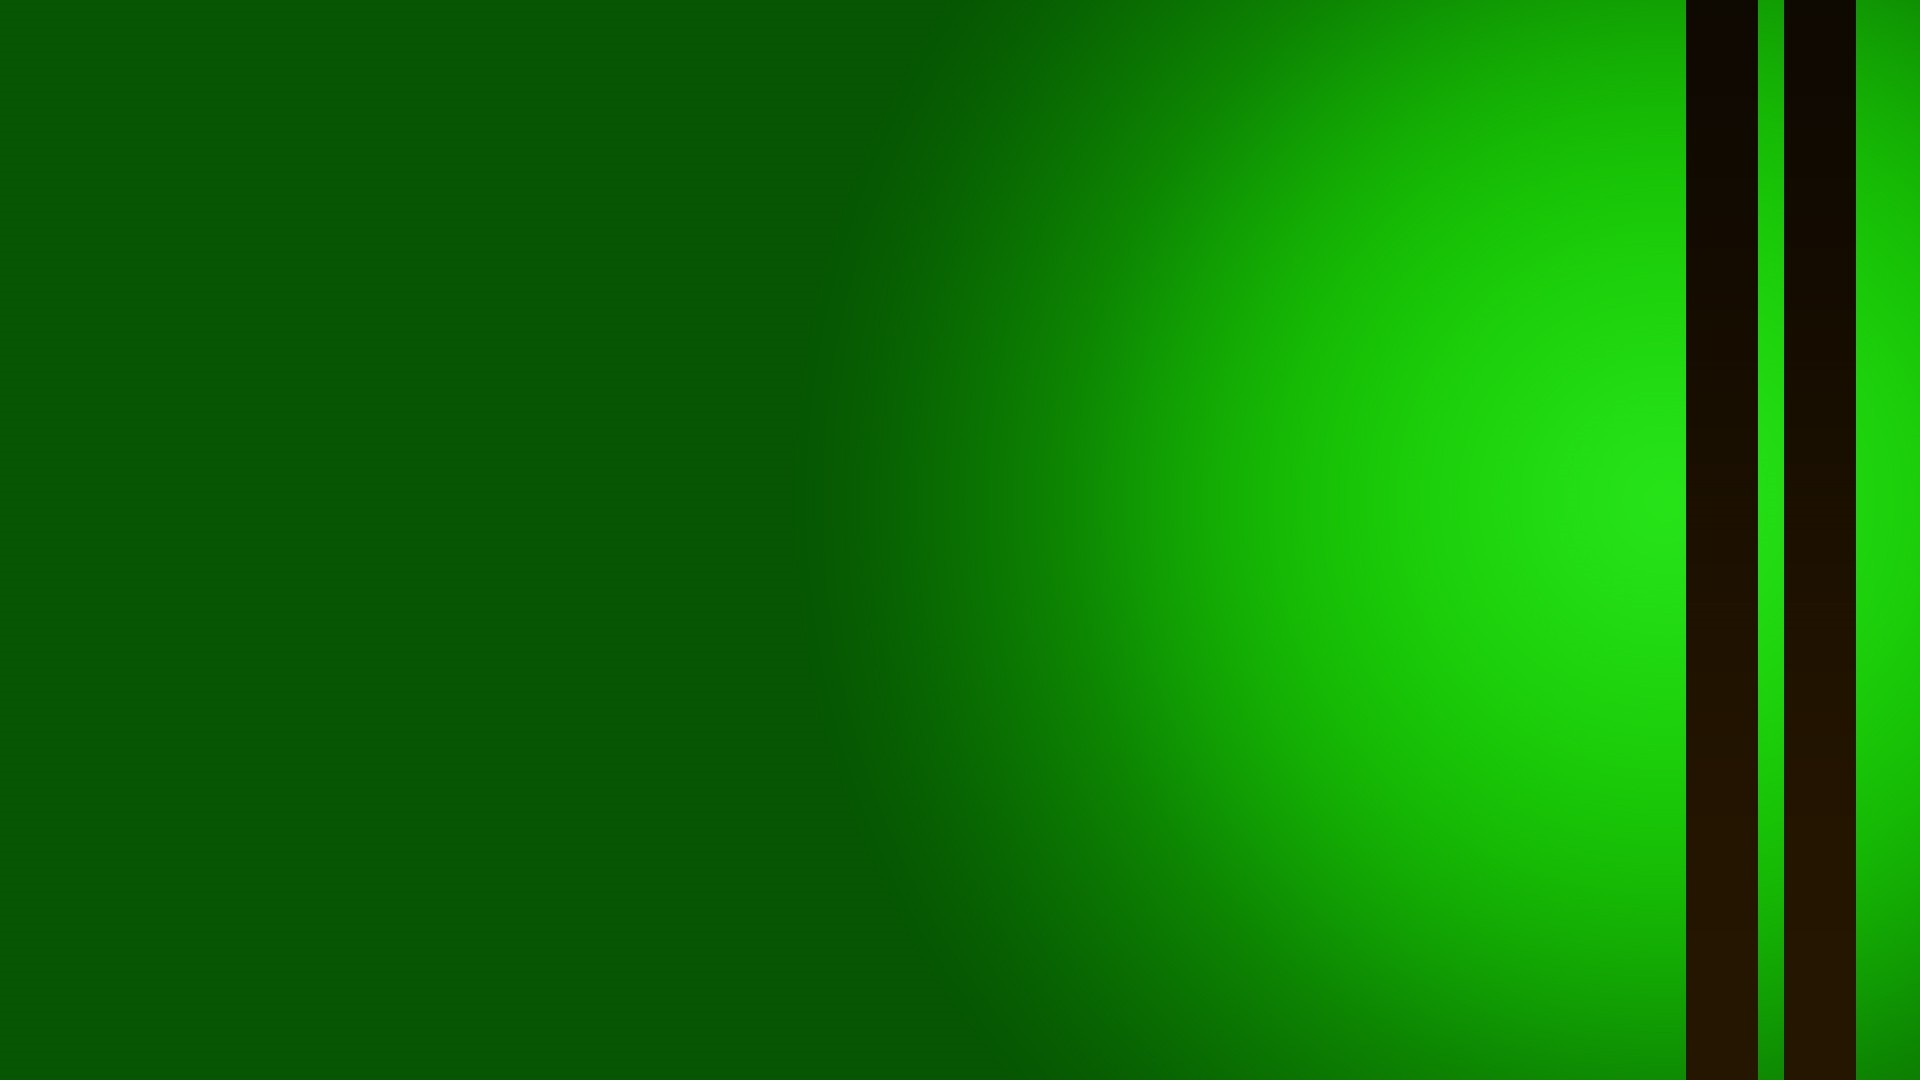 Lime Green HD Wallpaper